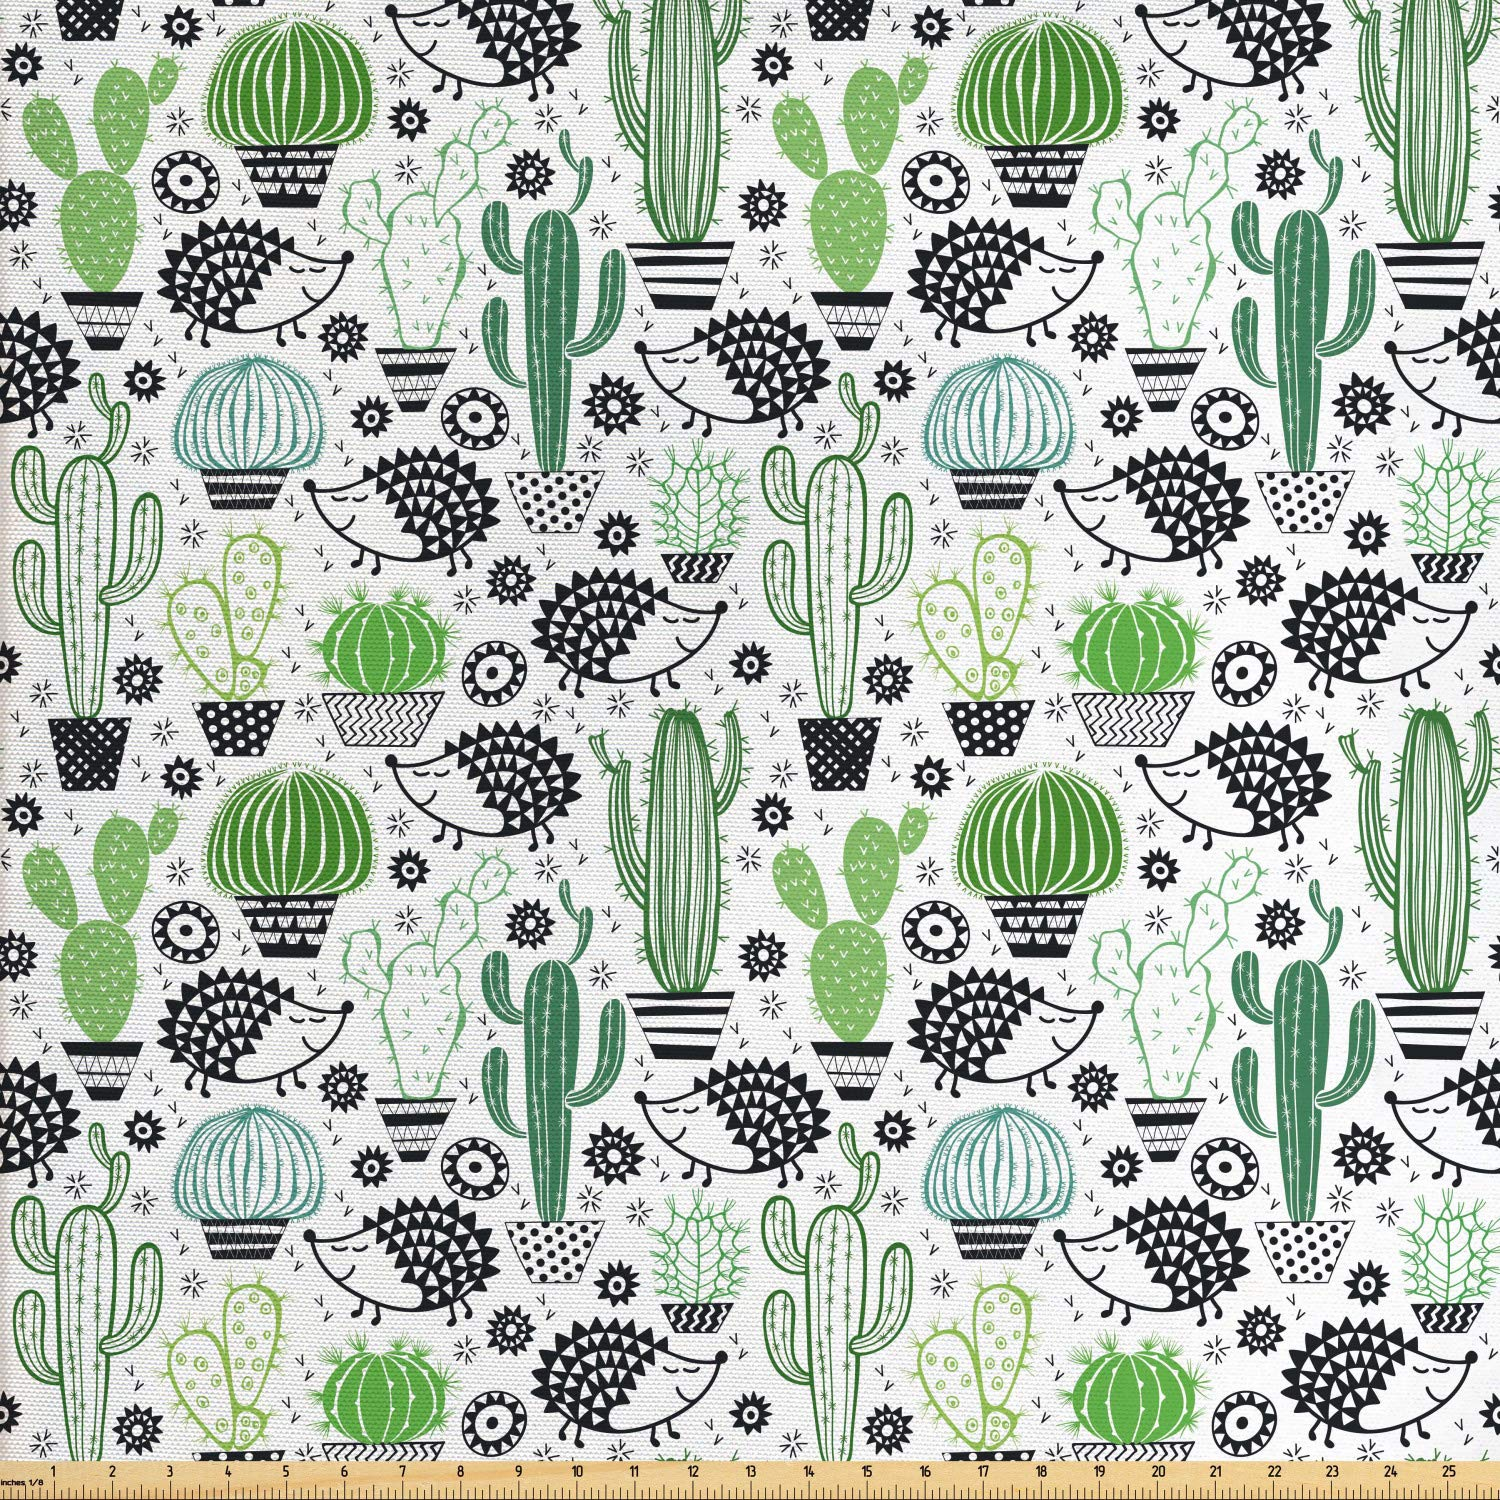 Ambesonne Cactus Fabric by The Yard, Cartoon Style Inspired Drawing of Cute Hedgehog Animals Saguaro and Prickly Pear, Decorative Fabric for Upholstery and Home Accents,10 Yards, Multicolor